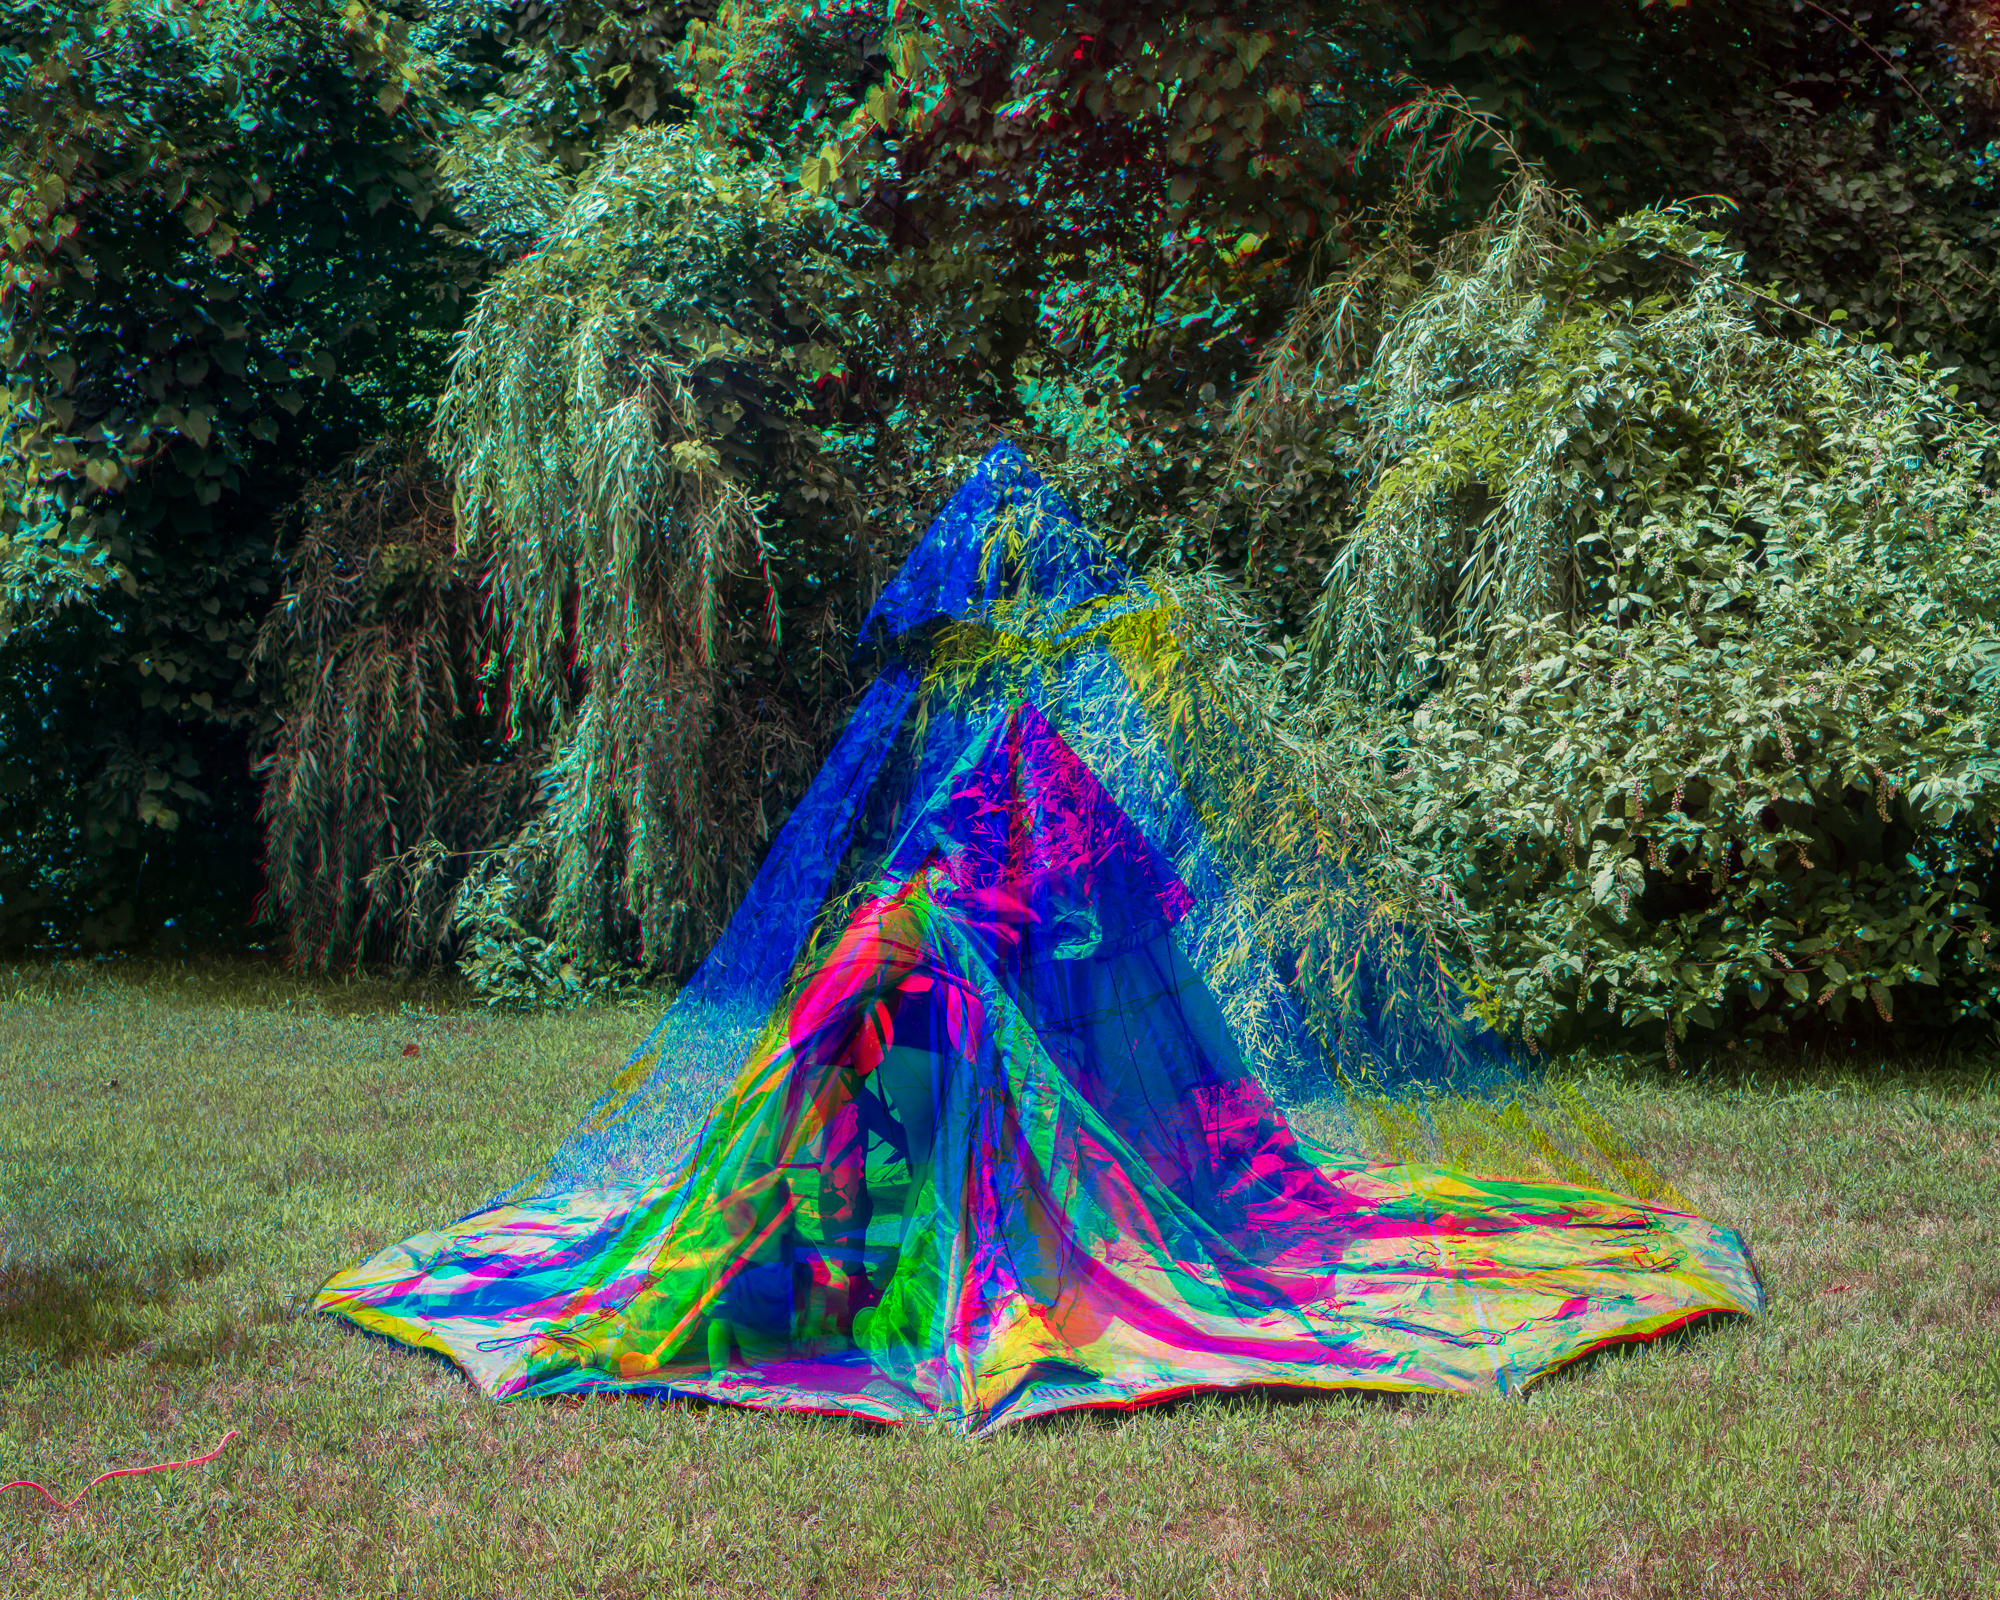 Setting Up Tent , 2015 Archival pigment print 24 x 30 in (60.96 x 76.2 cm)